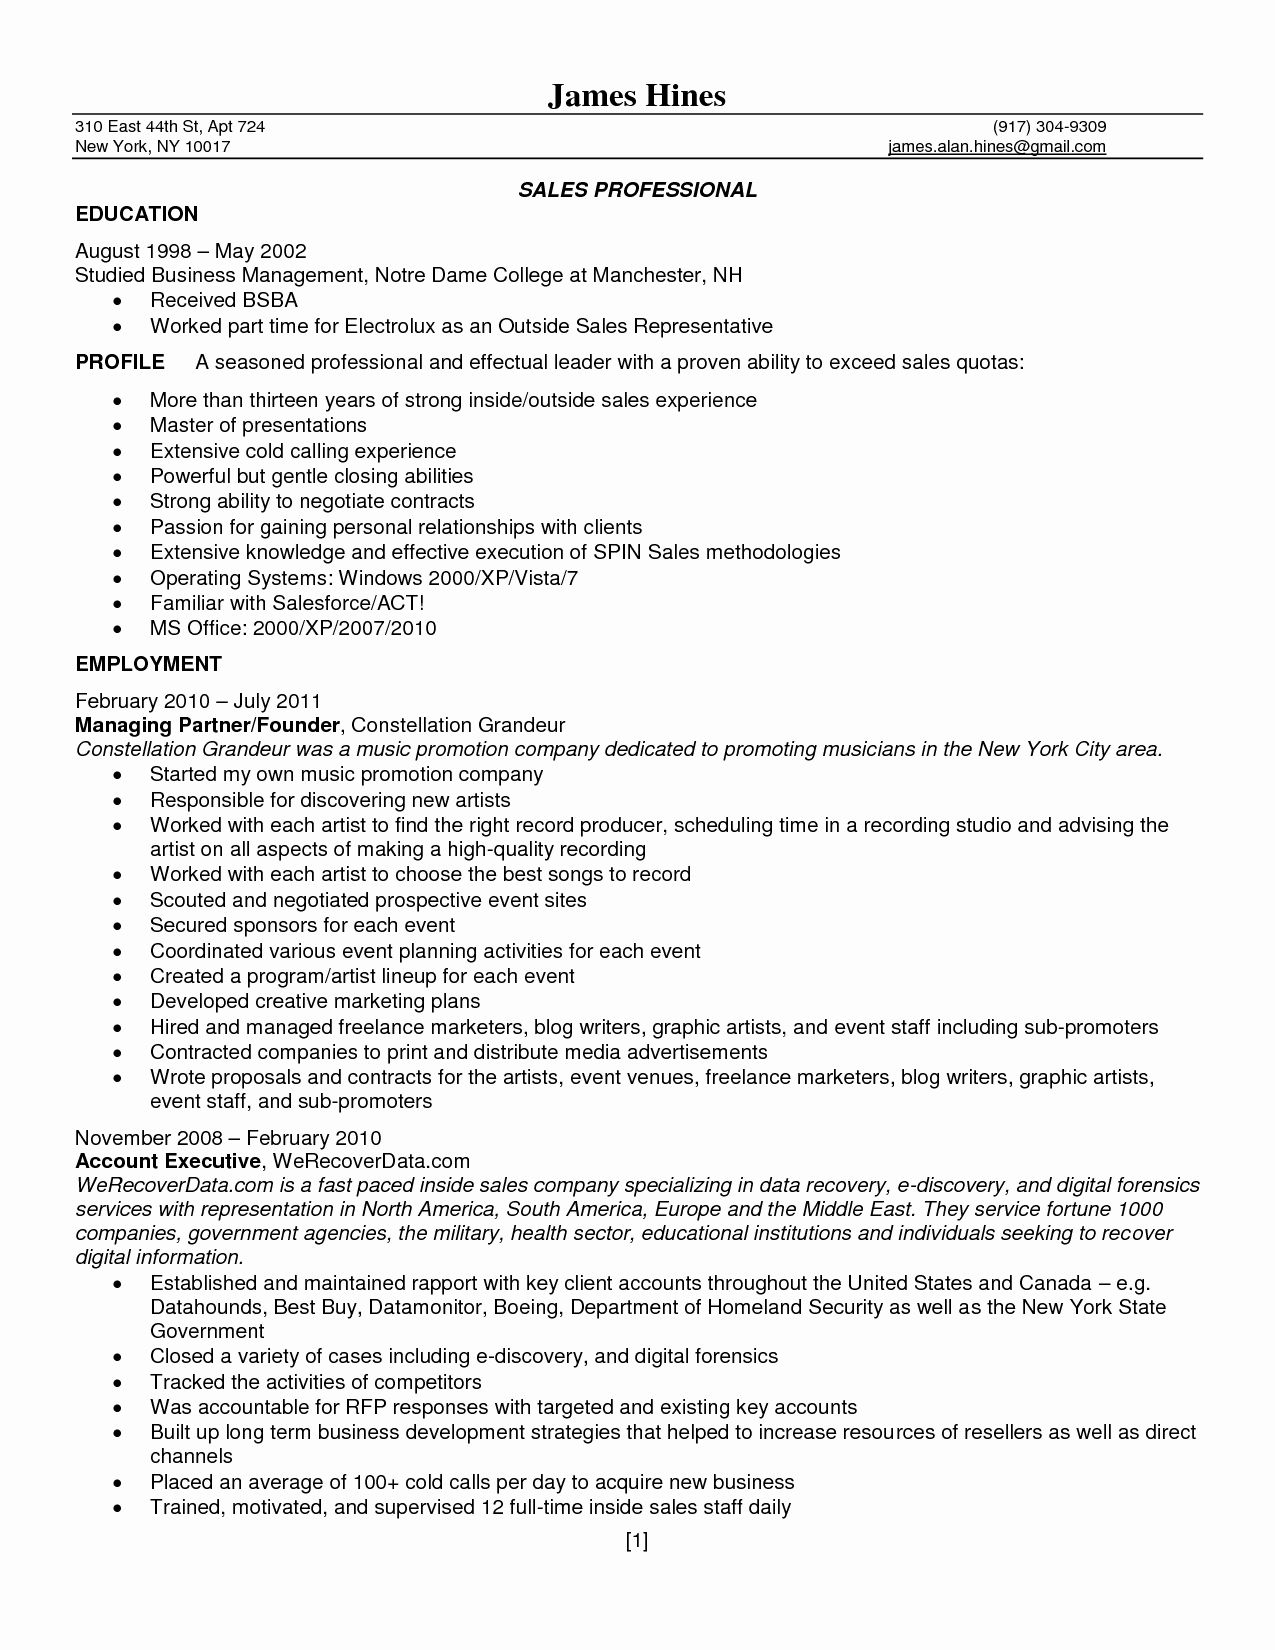 Best Buy Resume Application Employment